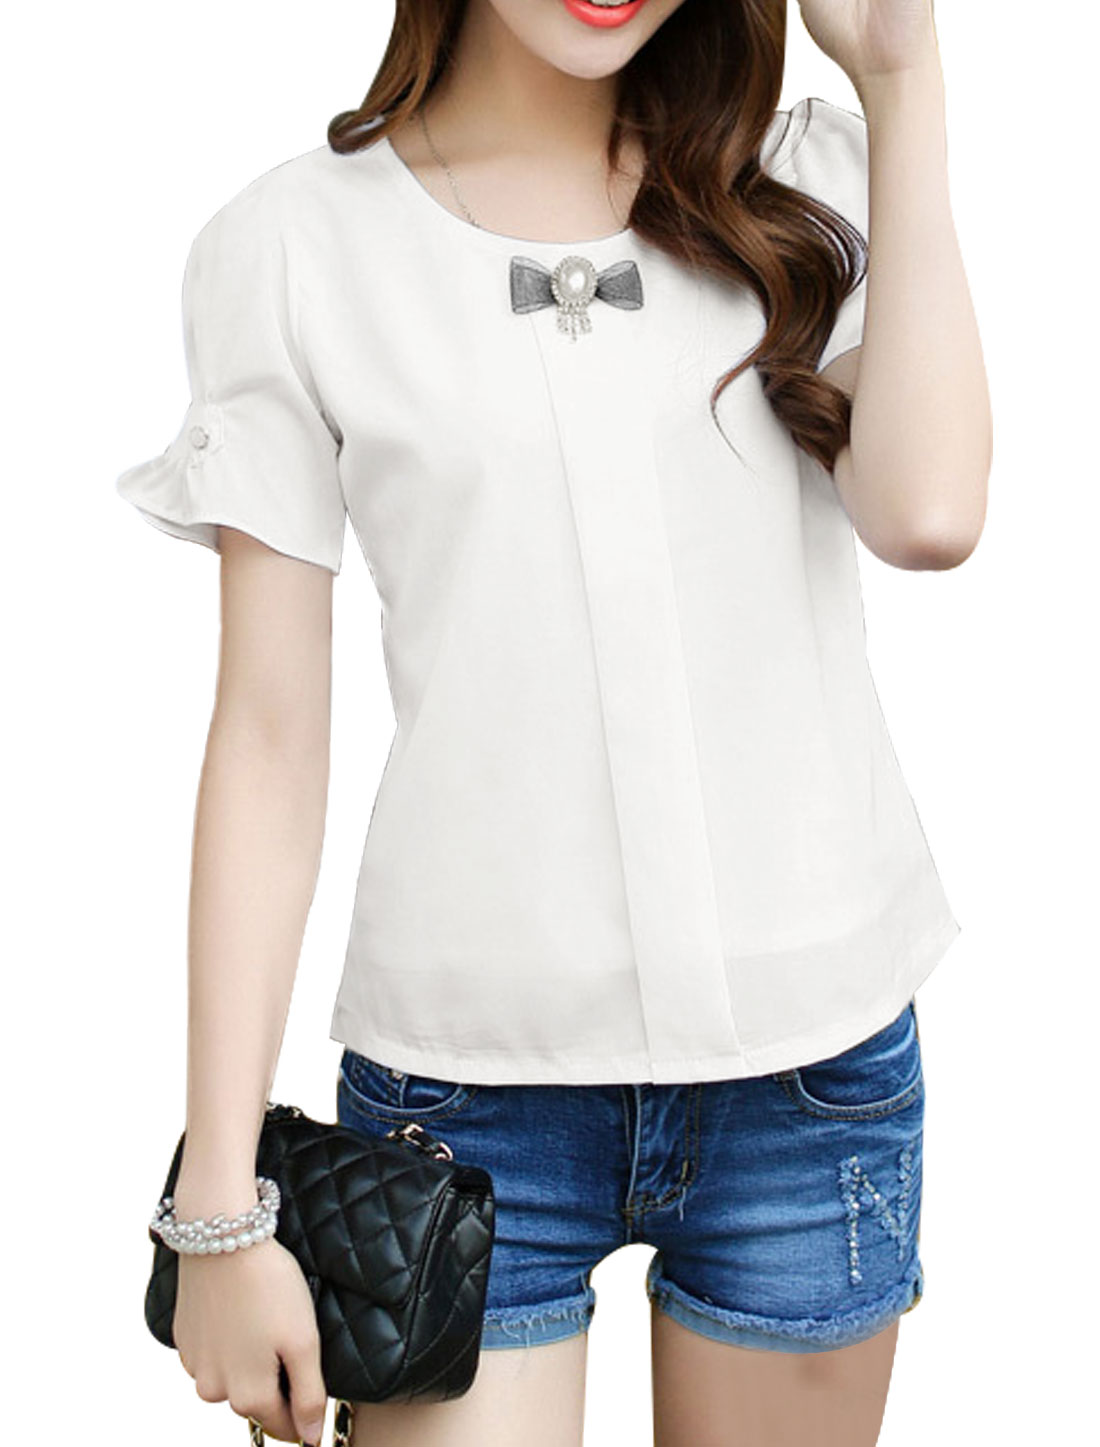 Woman Round Neck Short Sleeves Slipoverover Leisure Top w Brooch White XS